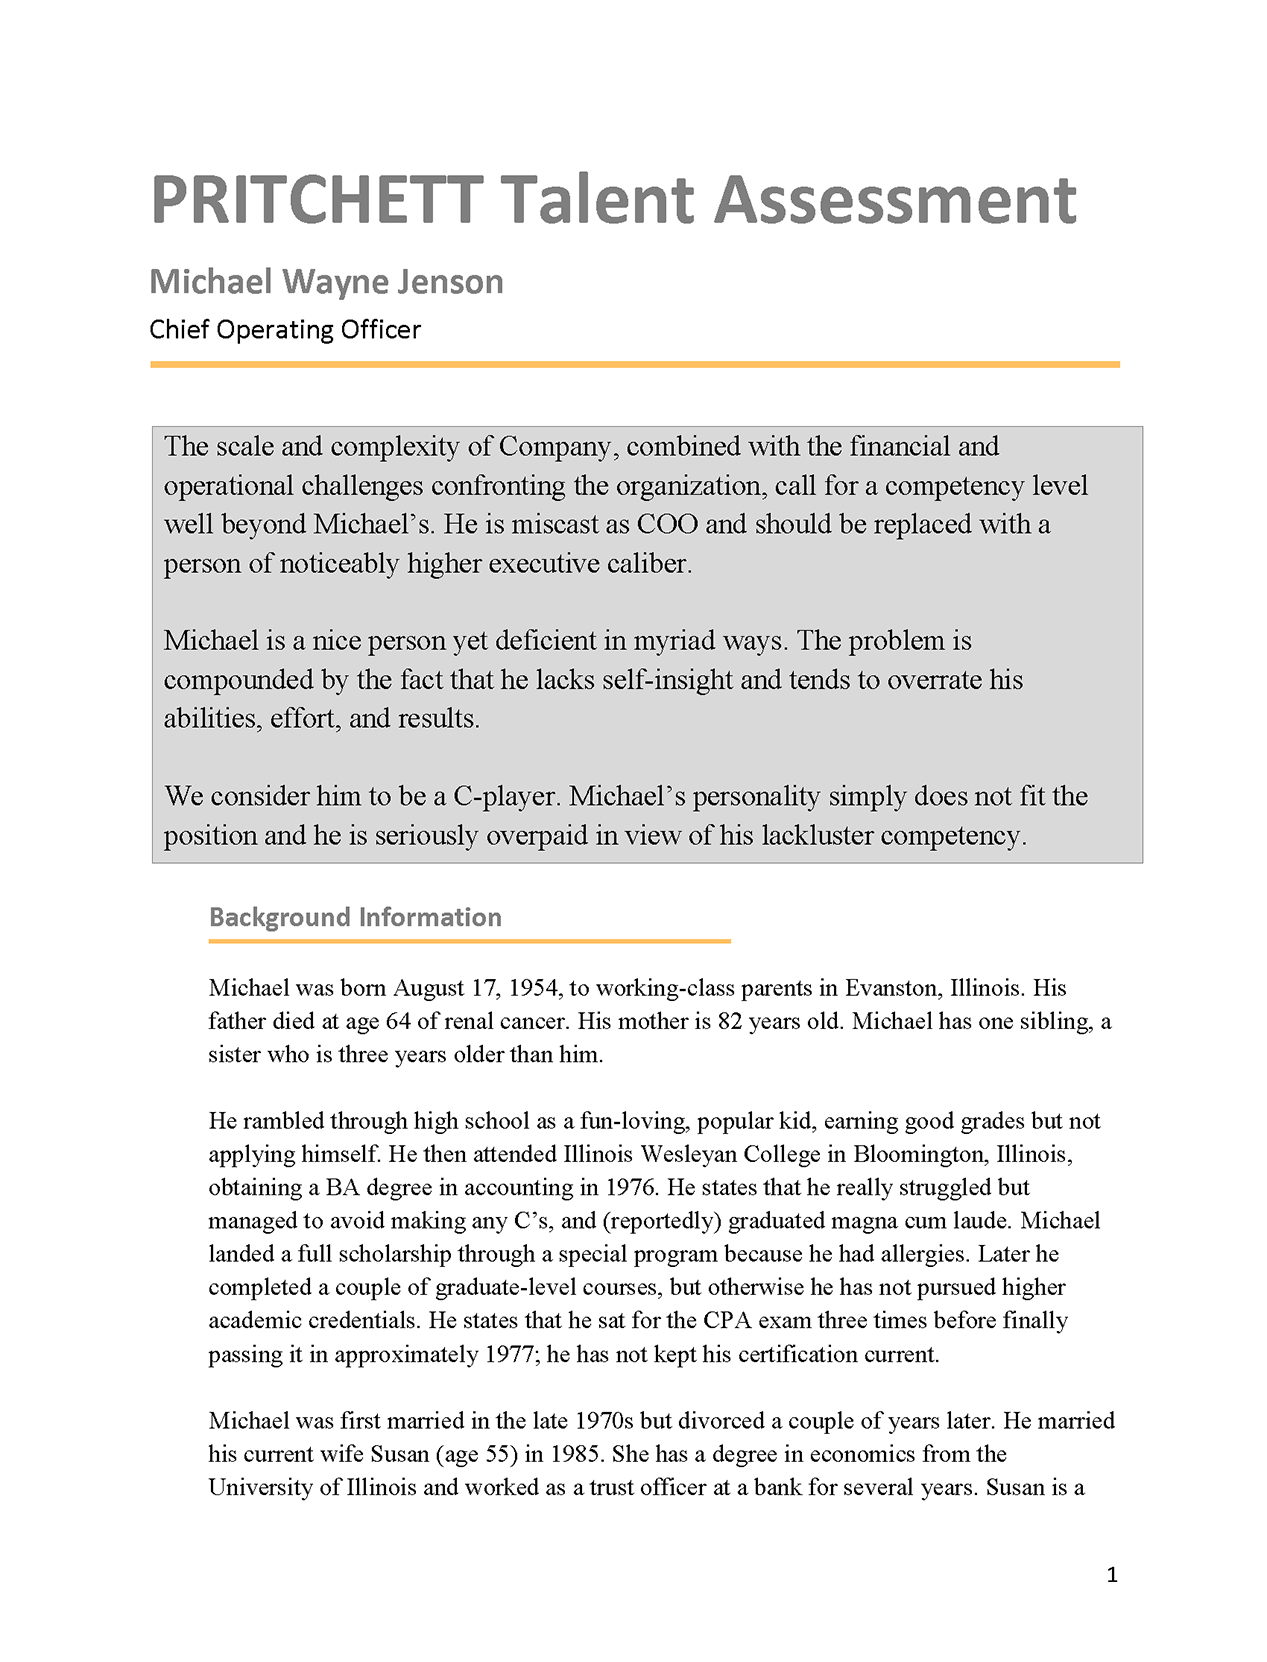 Chief Operating Officer Talent Assessment